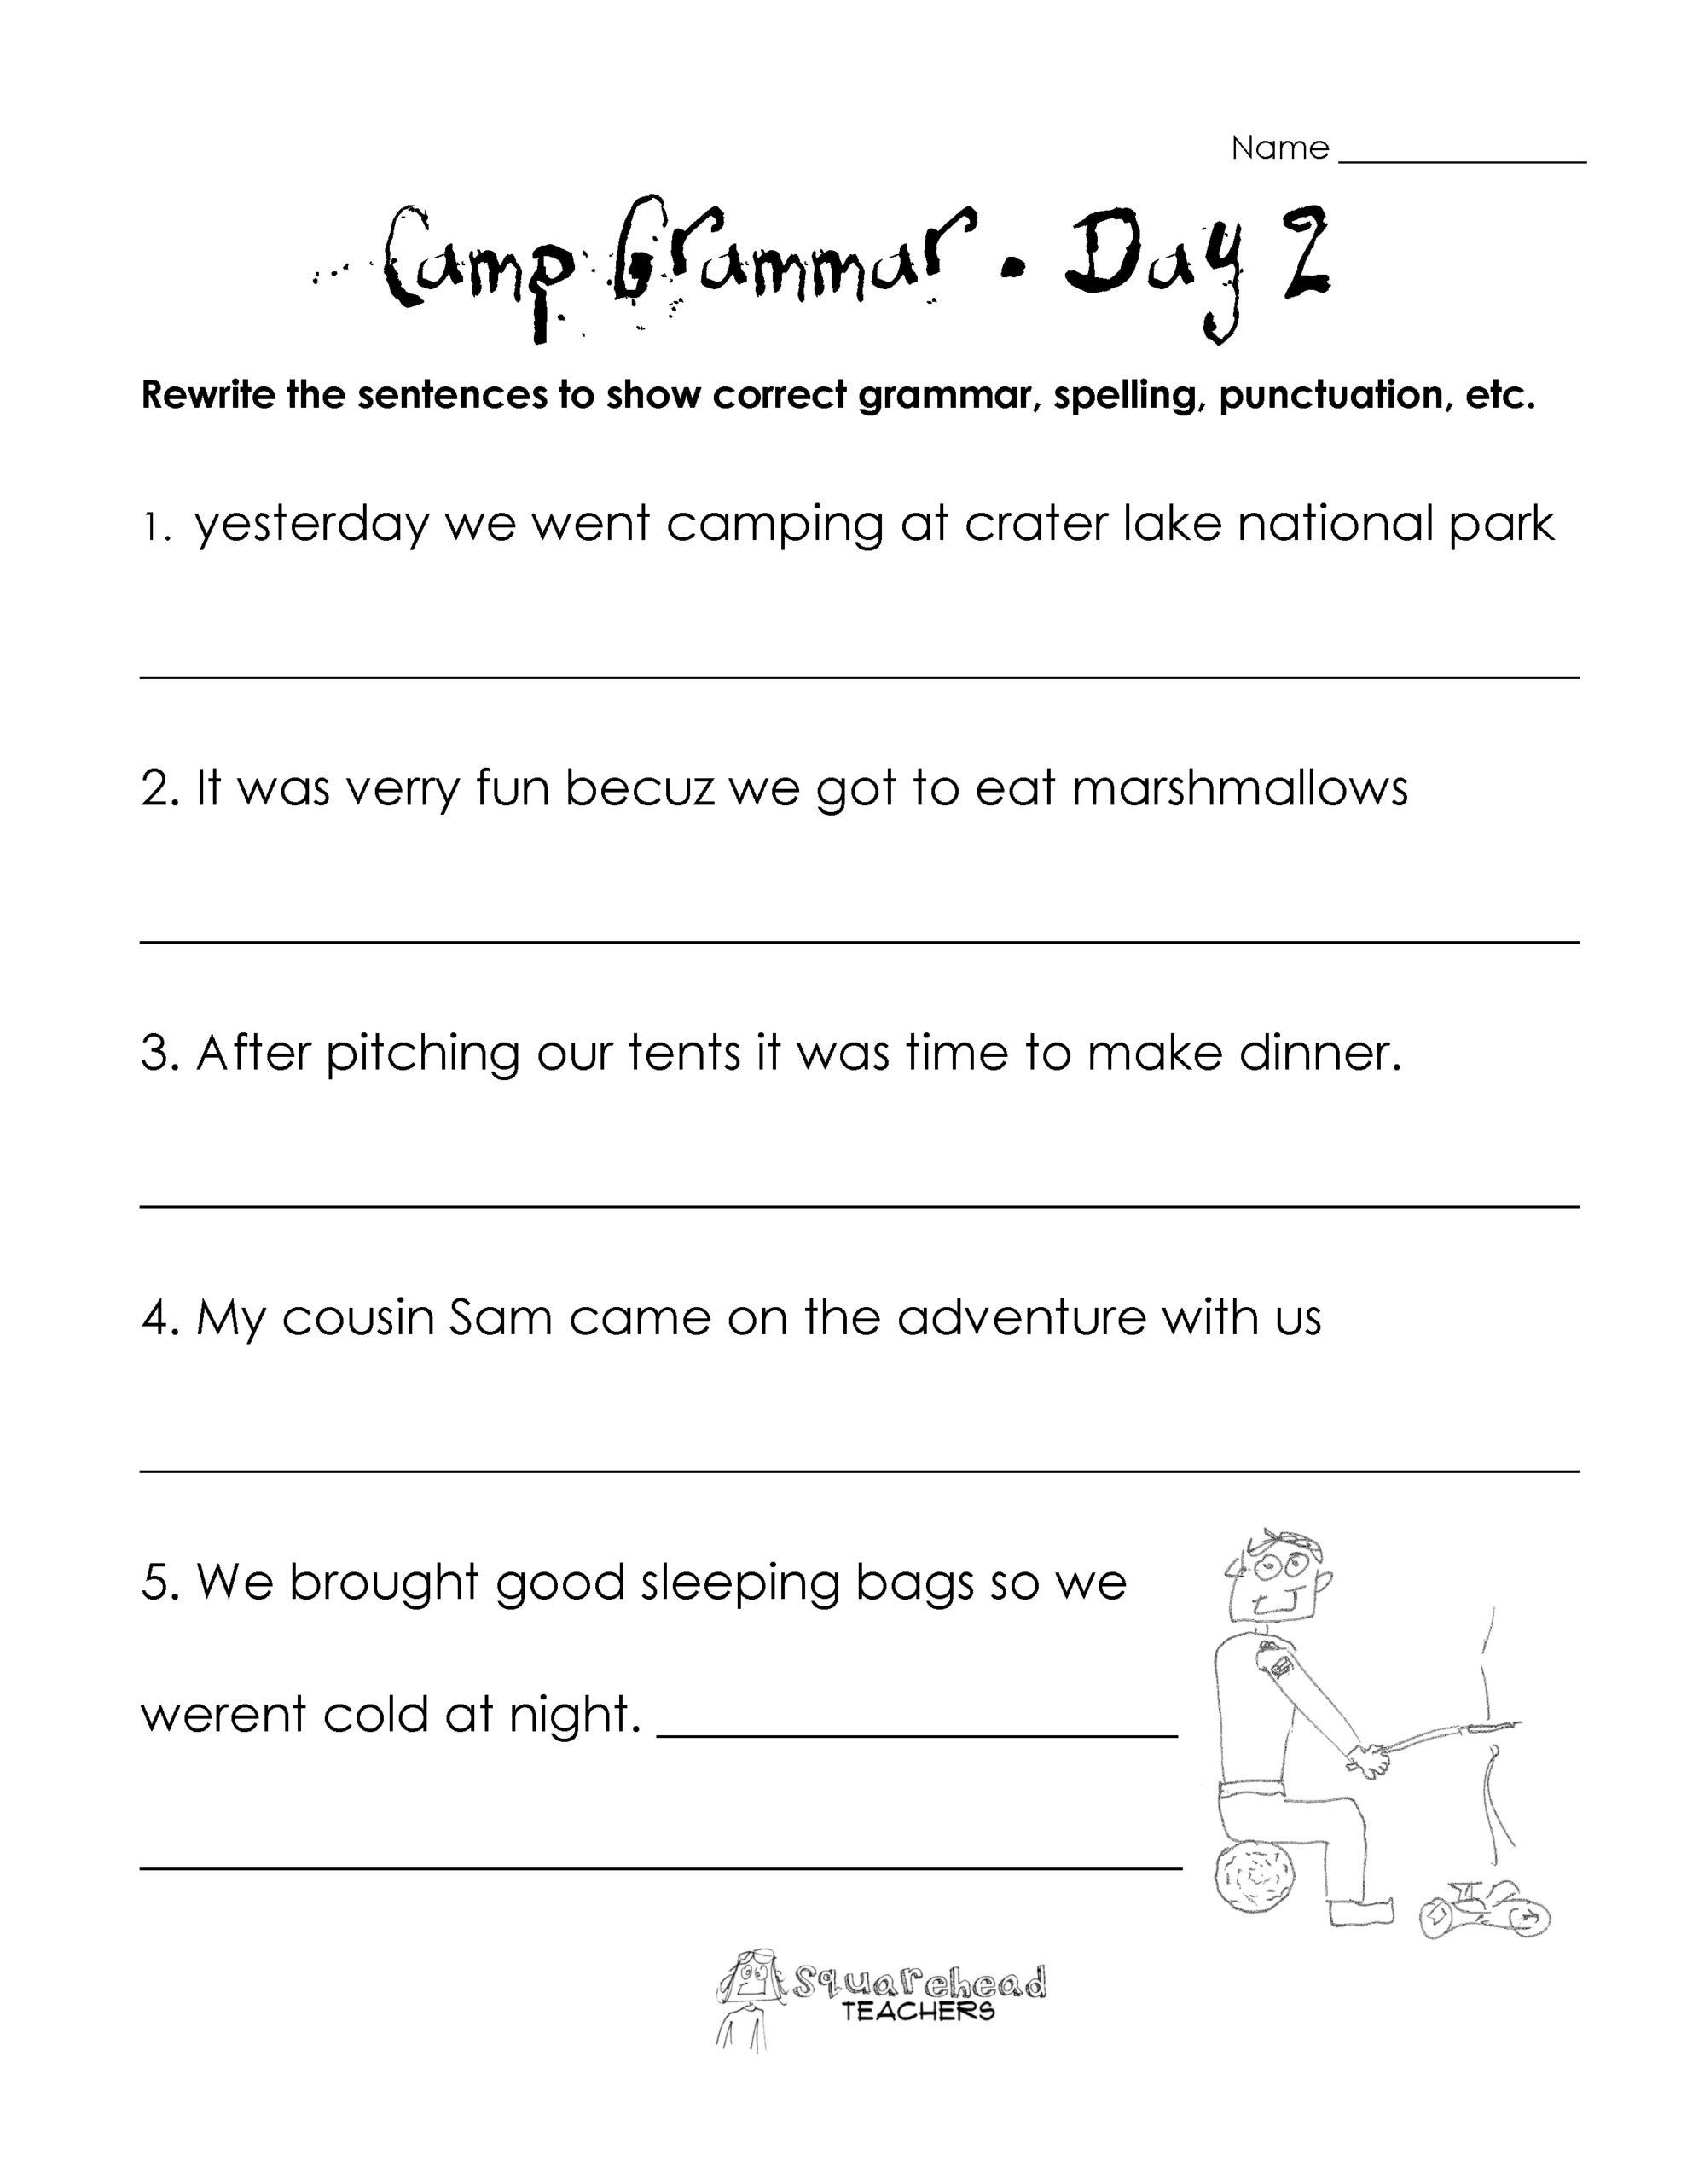 Grammar Worksheet 3rd Grade Free 3rd Grade Science Worksheets Printable and Grammar for